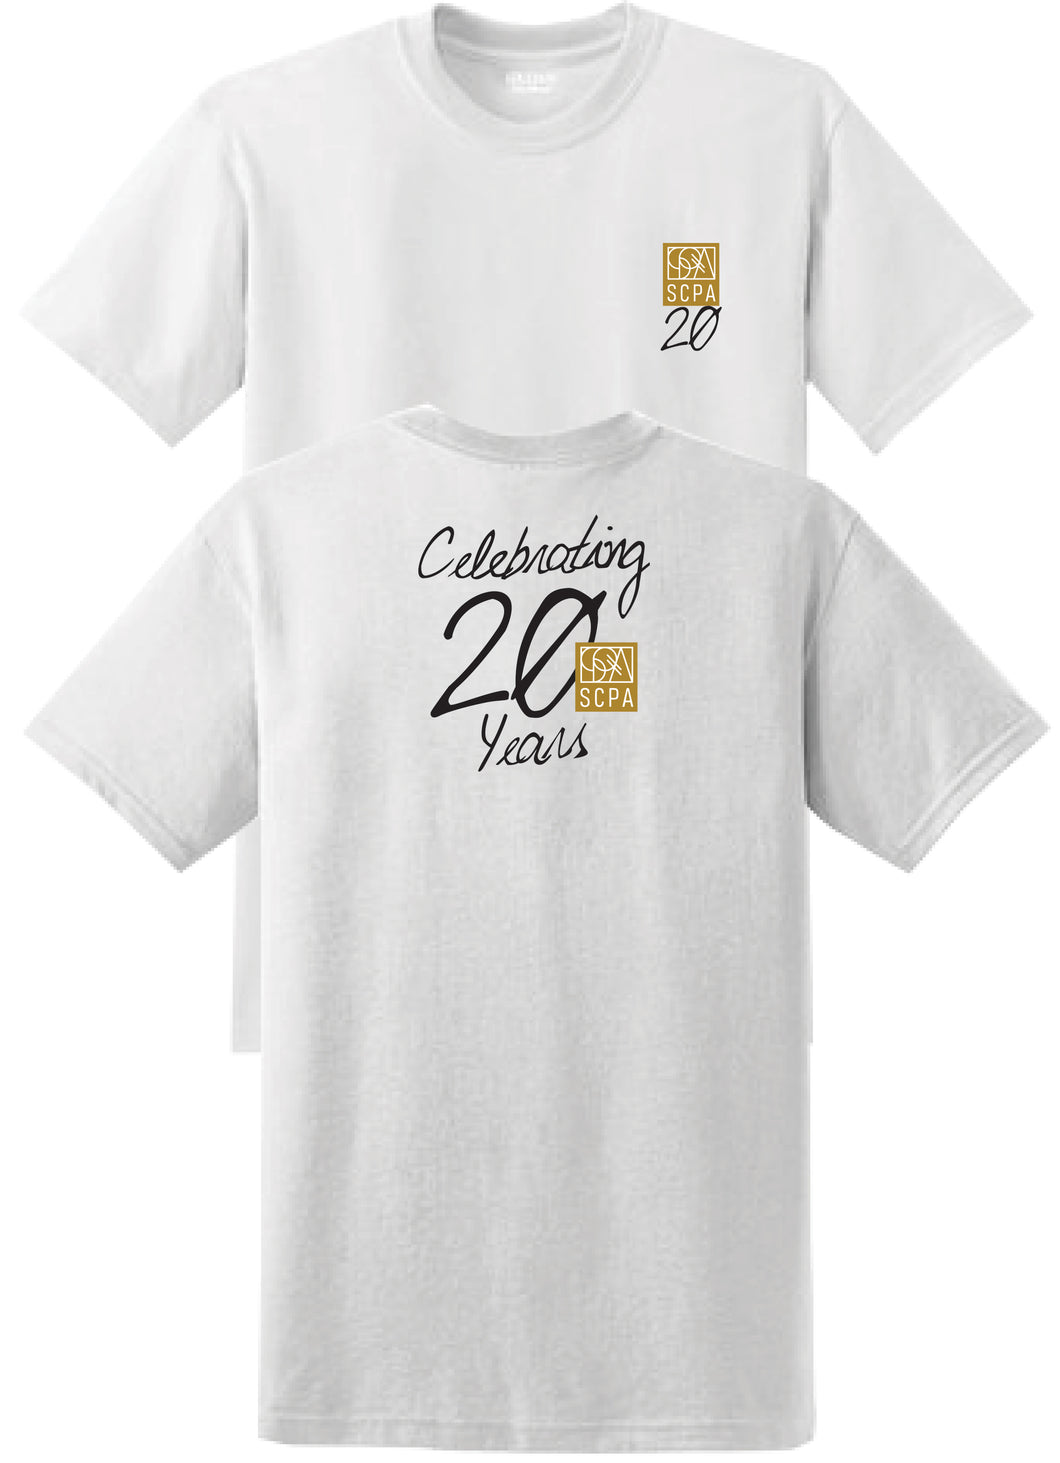 SCPA-20 - White T Shirt